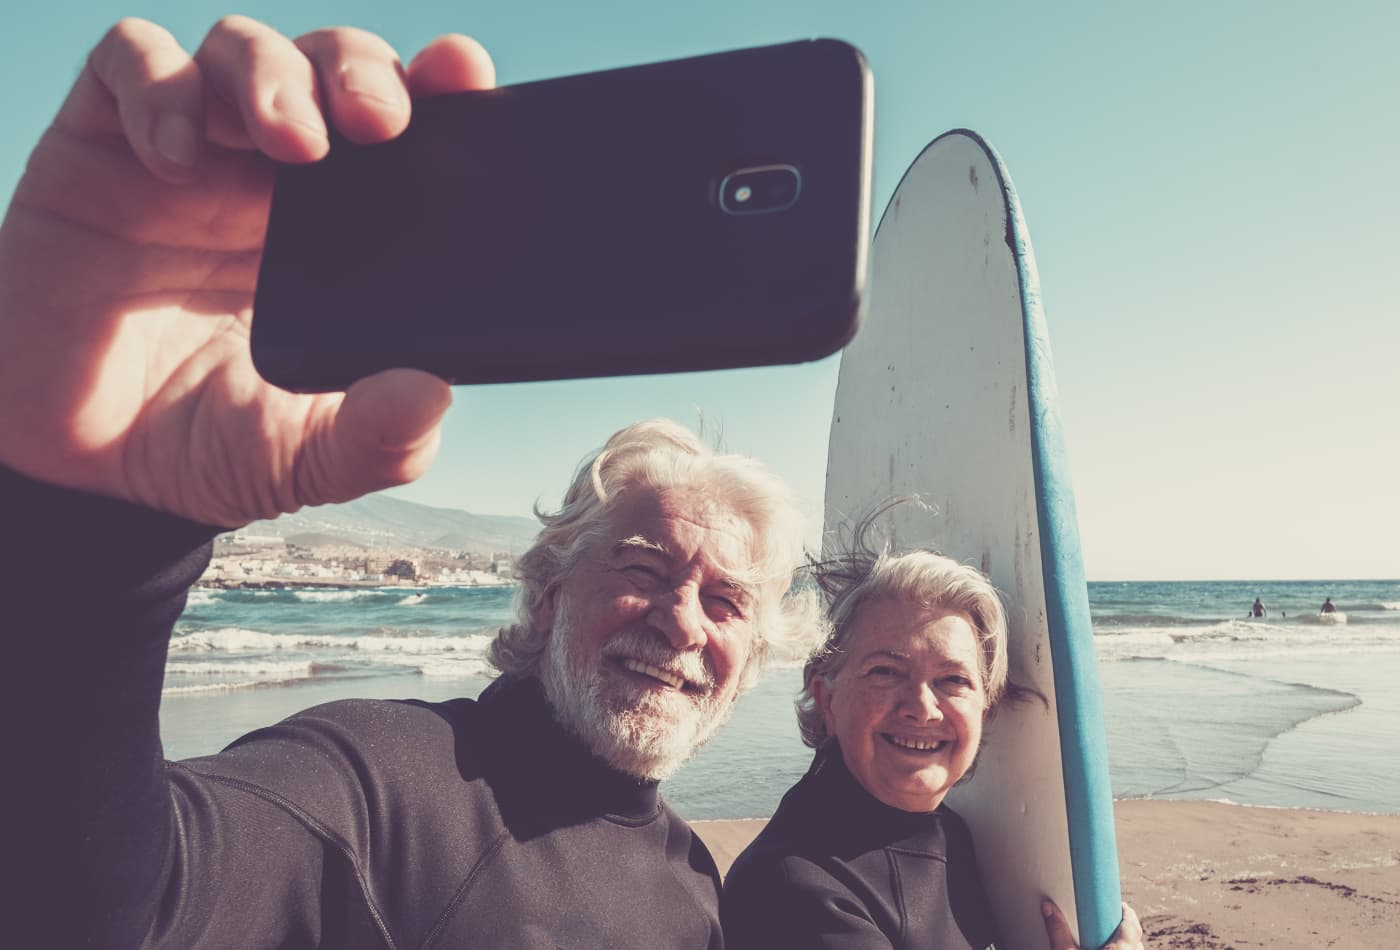 The best moves you can make in retirement, from people who are nailing their senior years in style